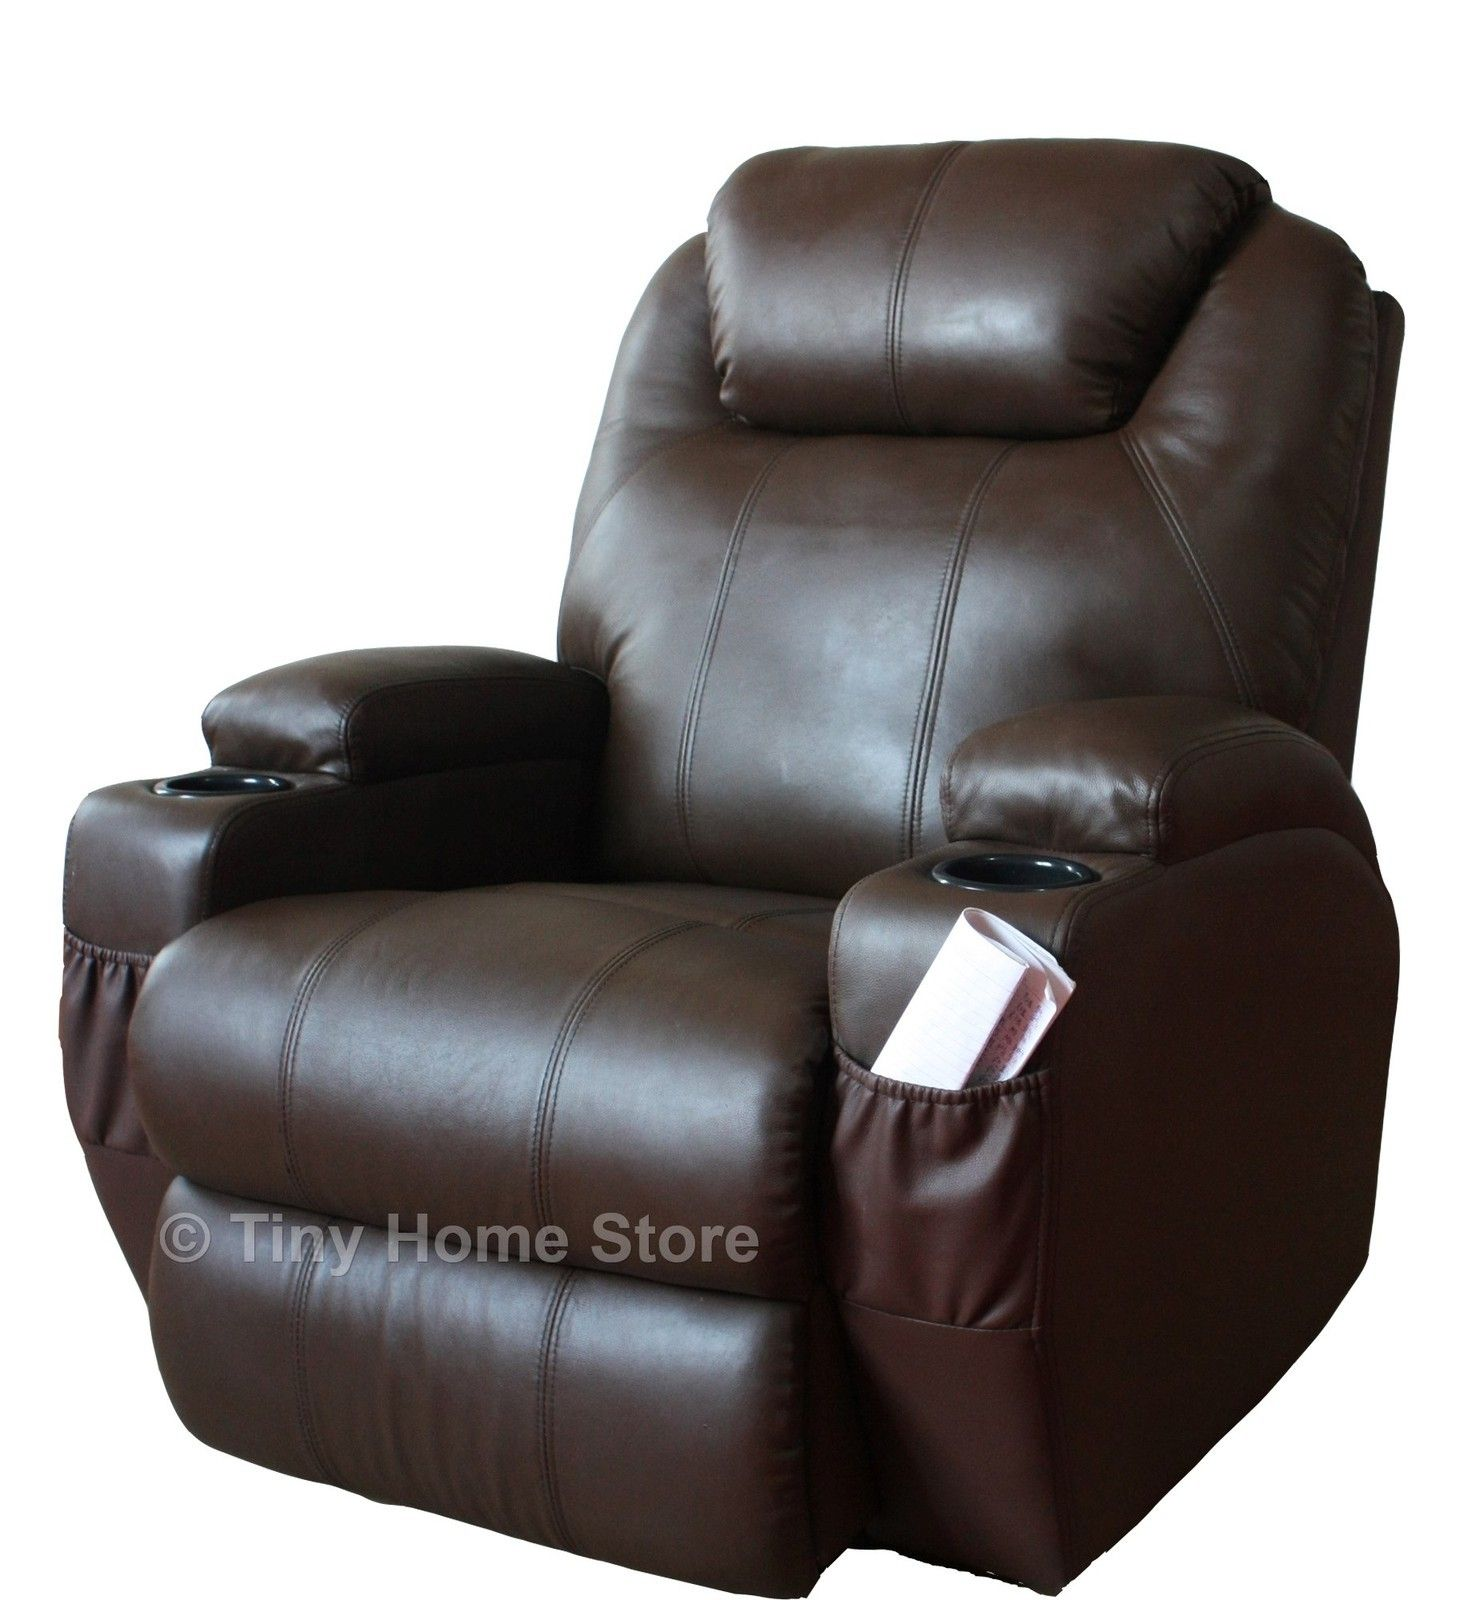 electric leather recliners with cup holders Luxury